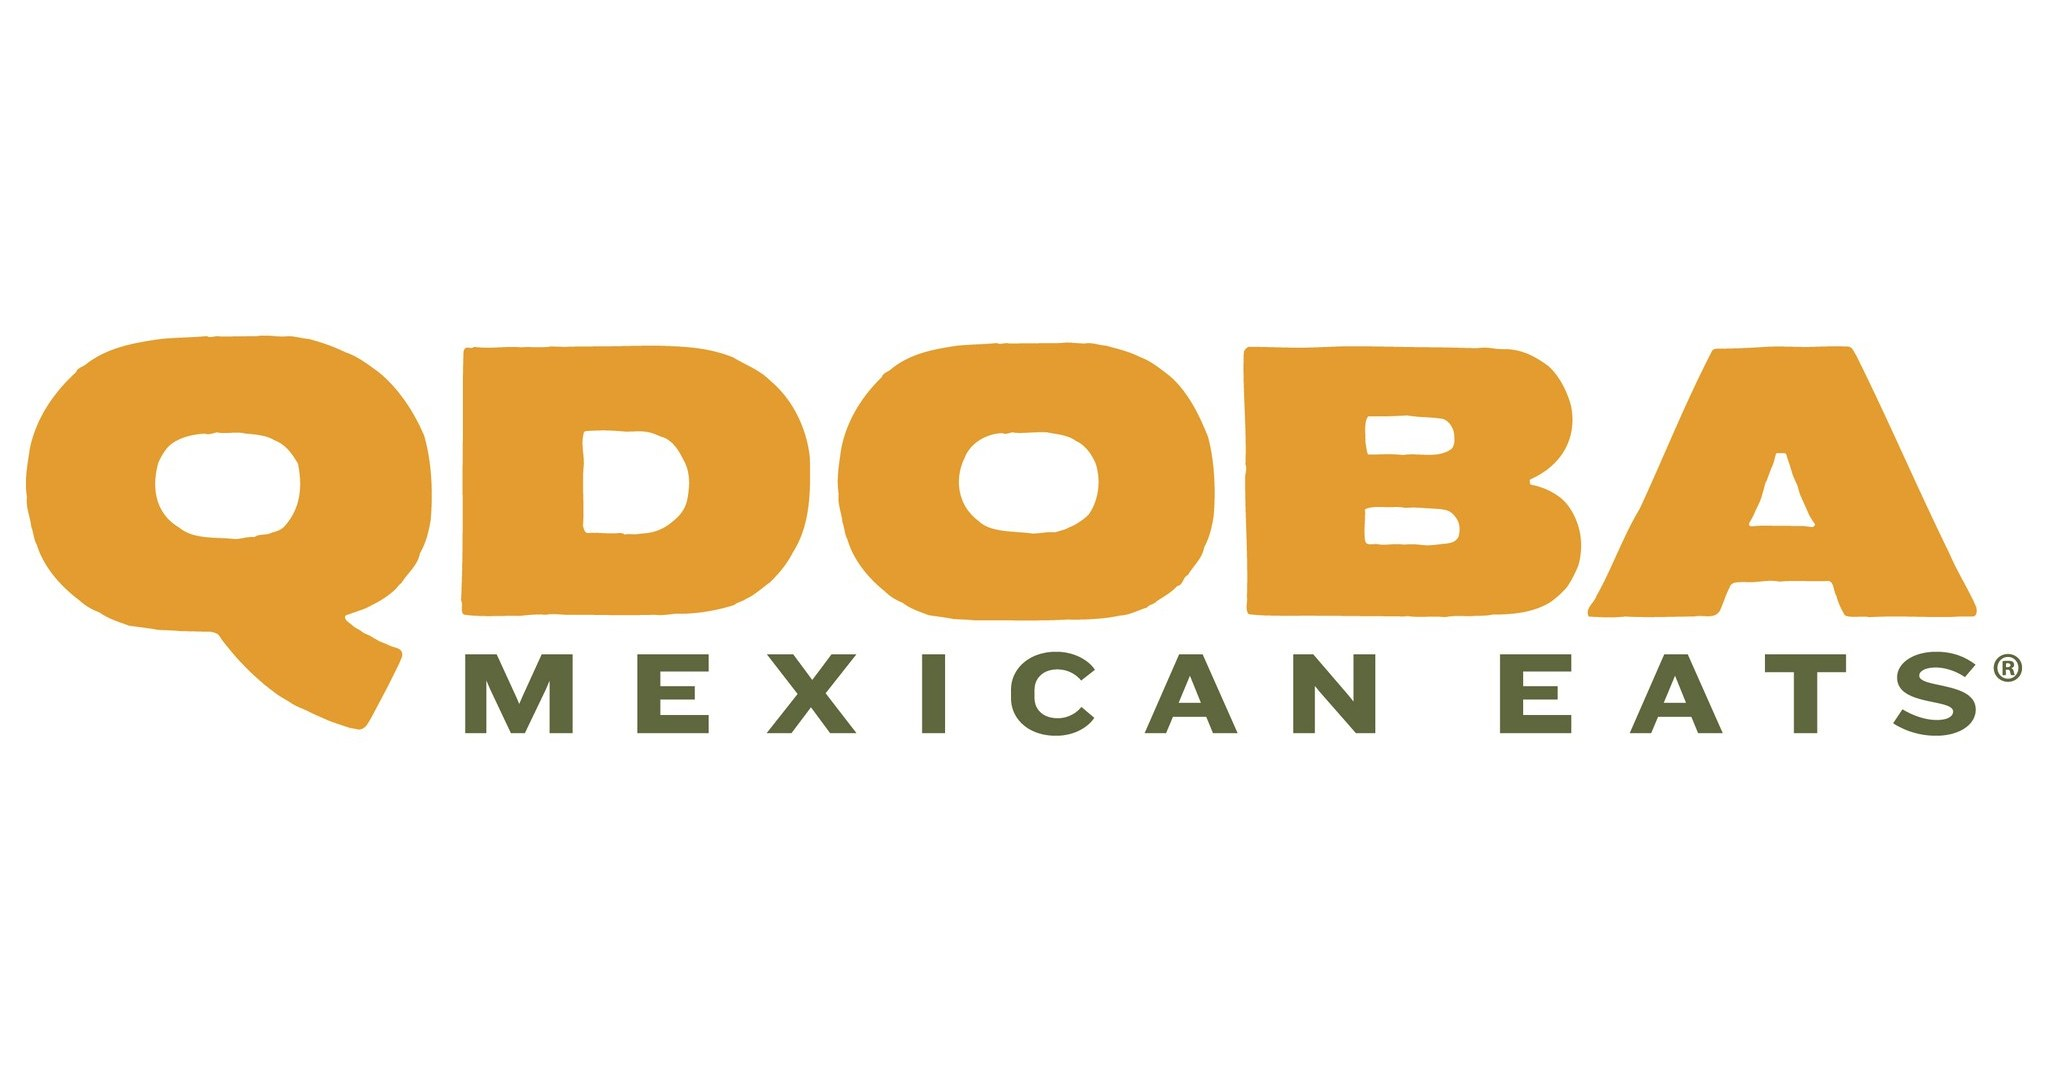 Qdoba investments with high returns 5 year investment planlicht lighting